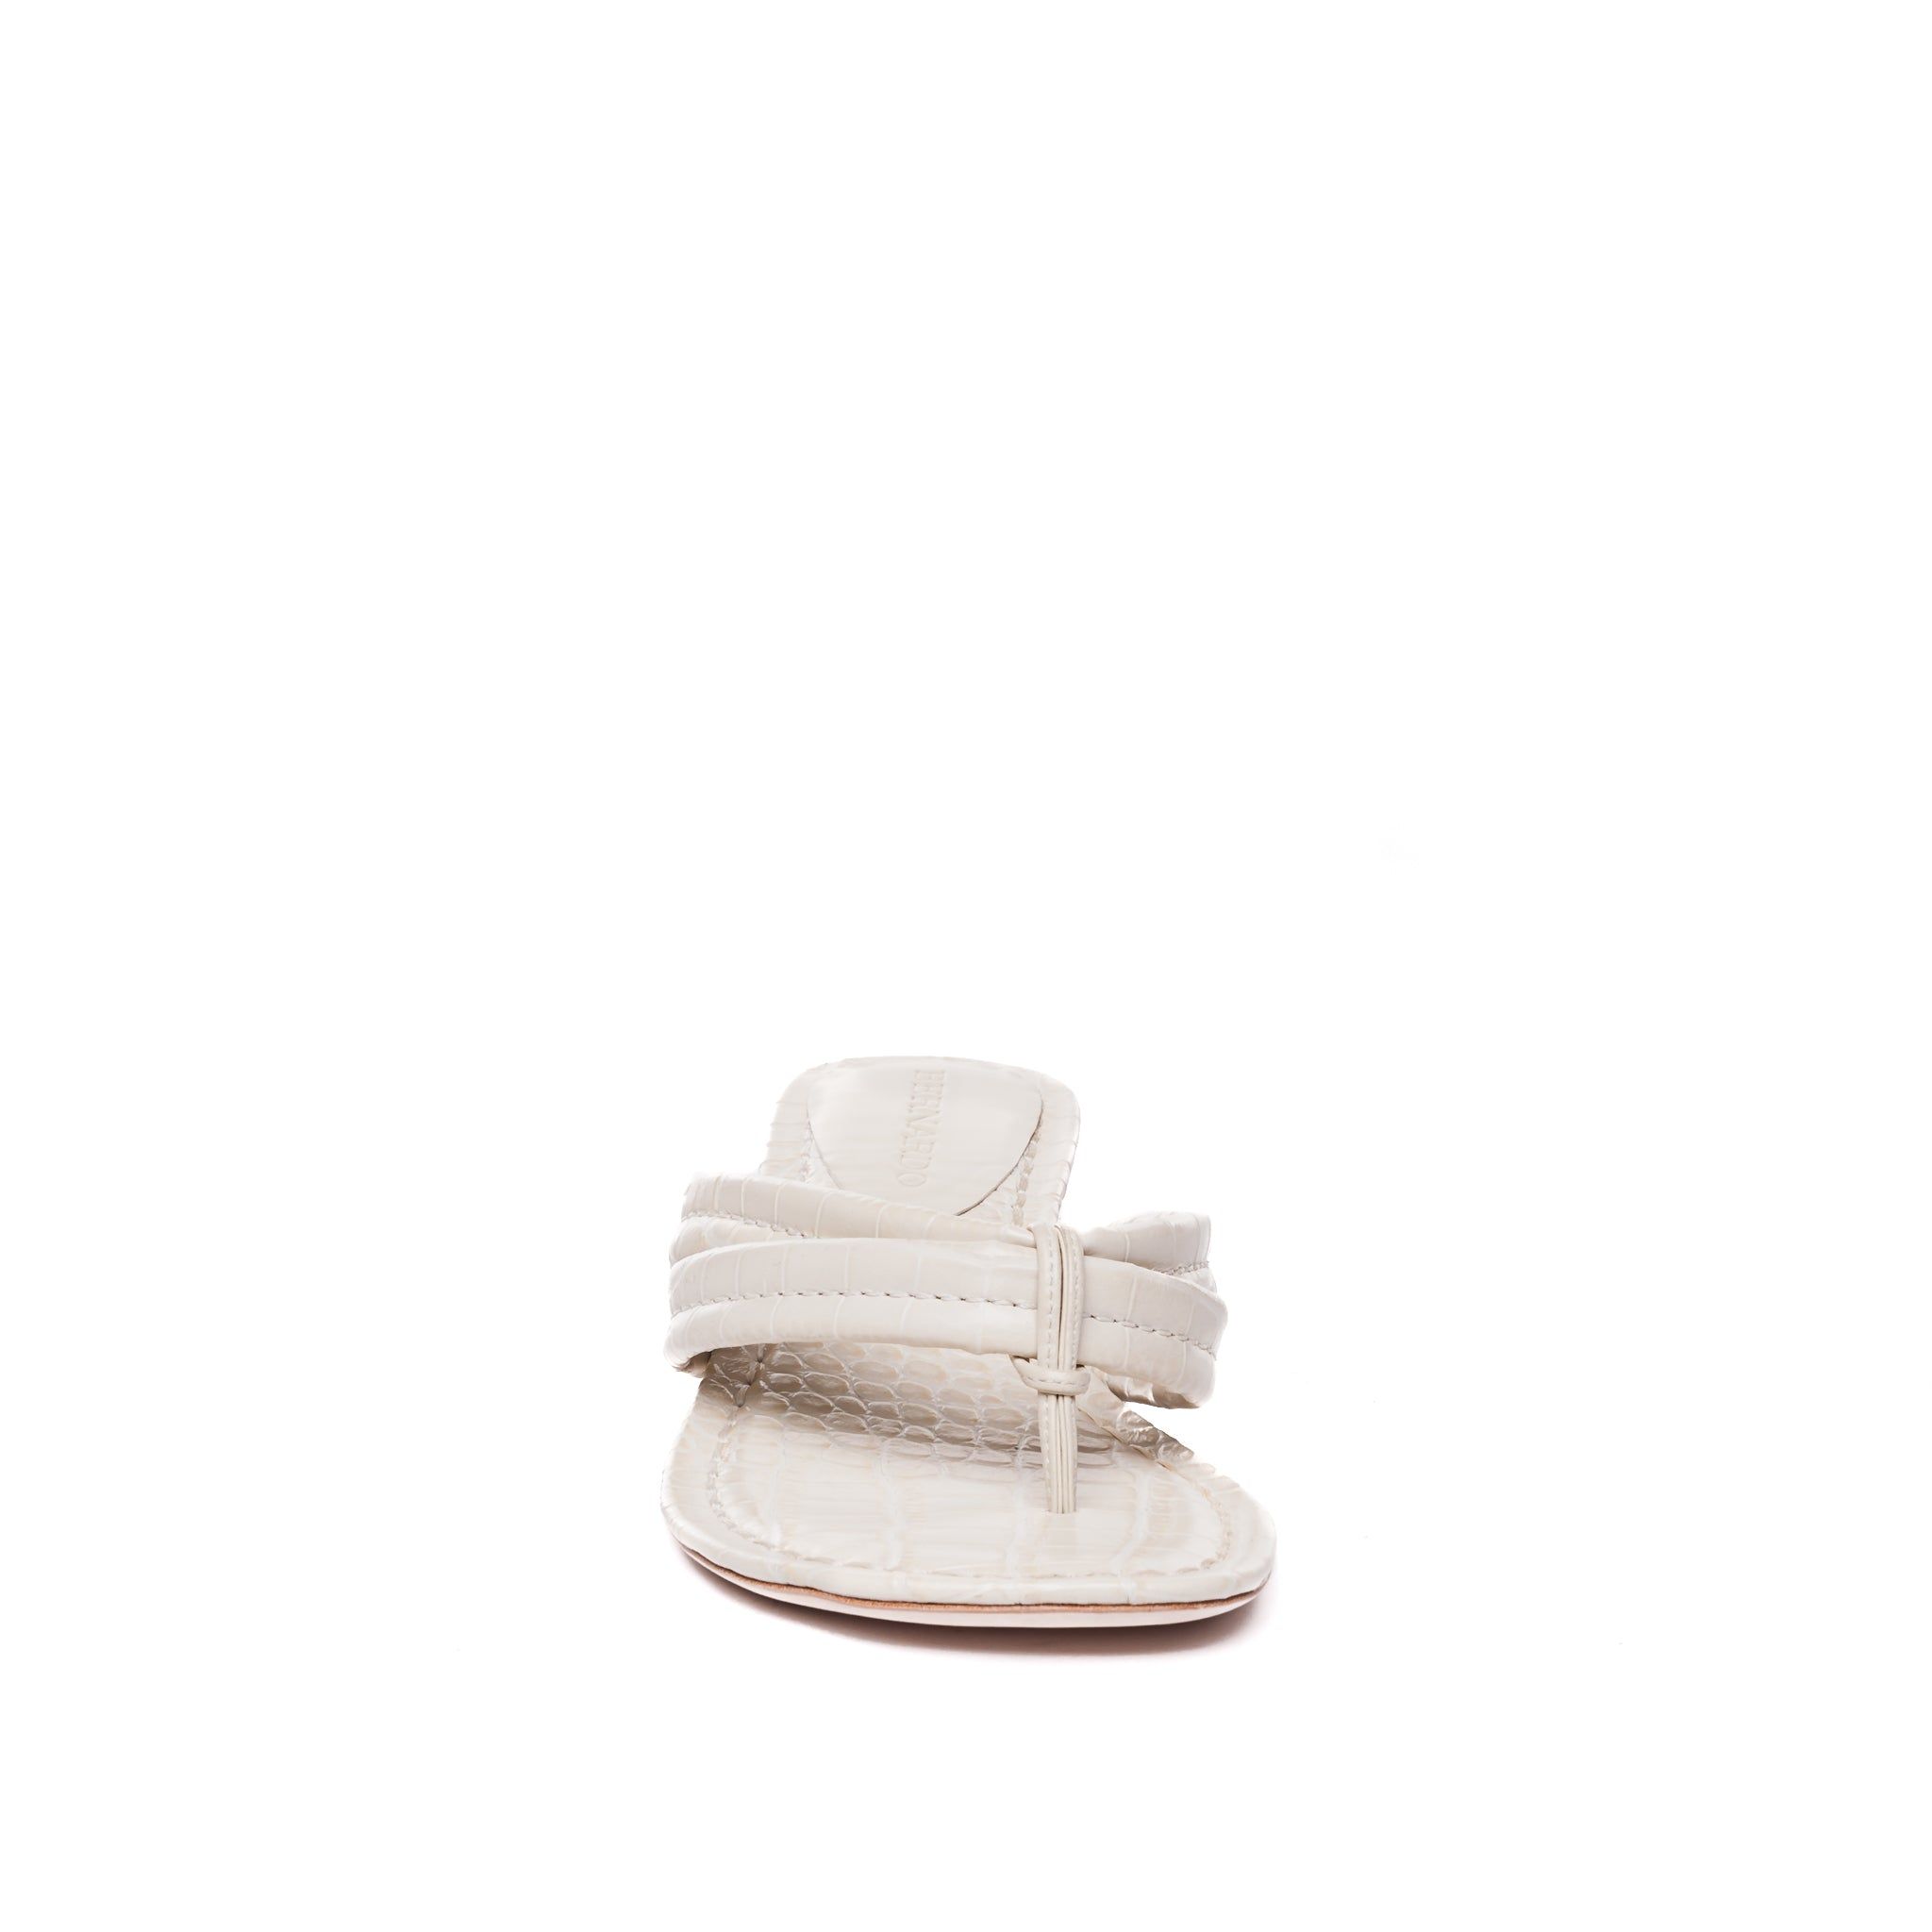 front view of Miami demi wedge sandal in eggshell leather